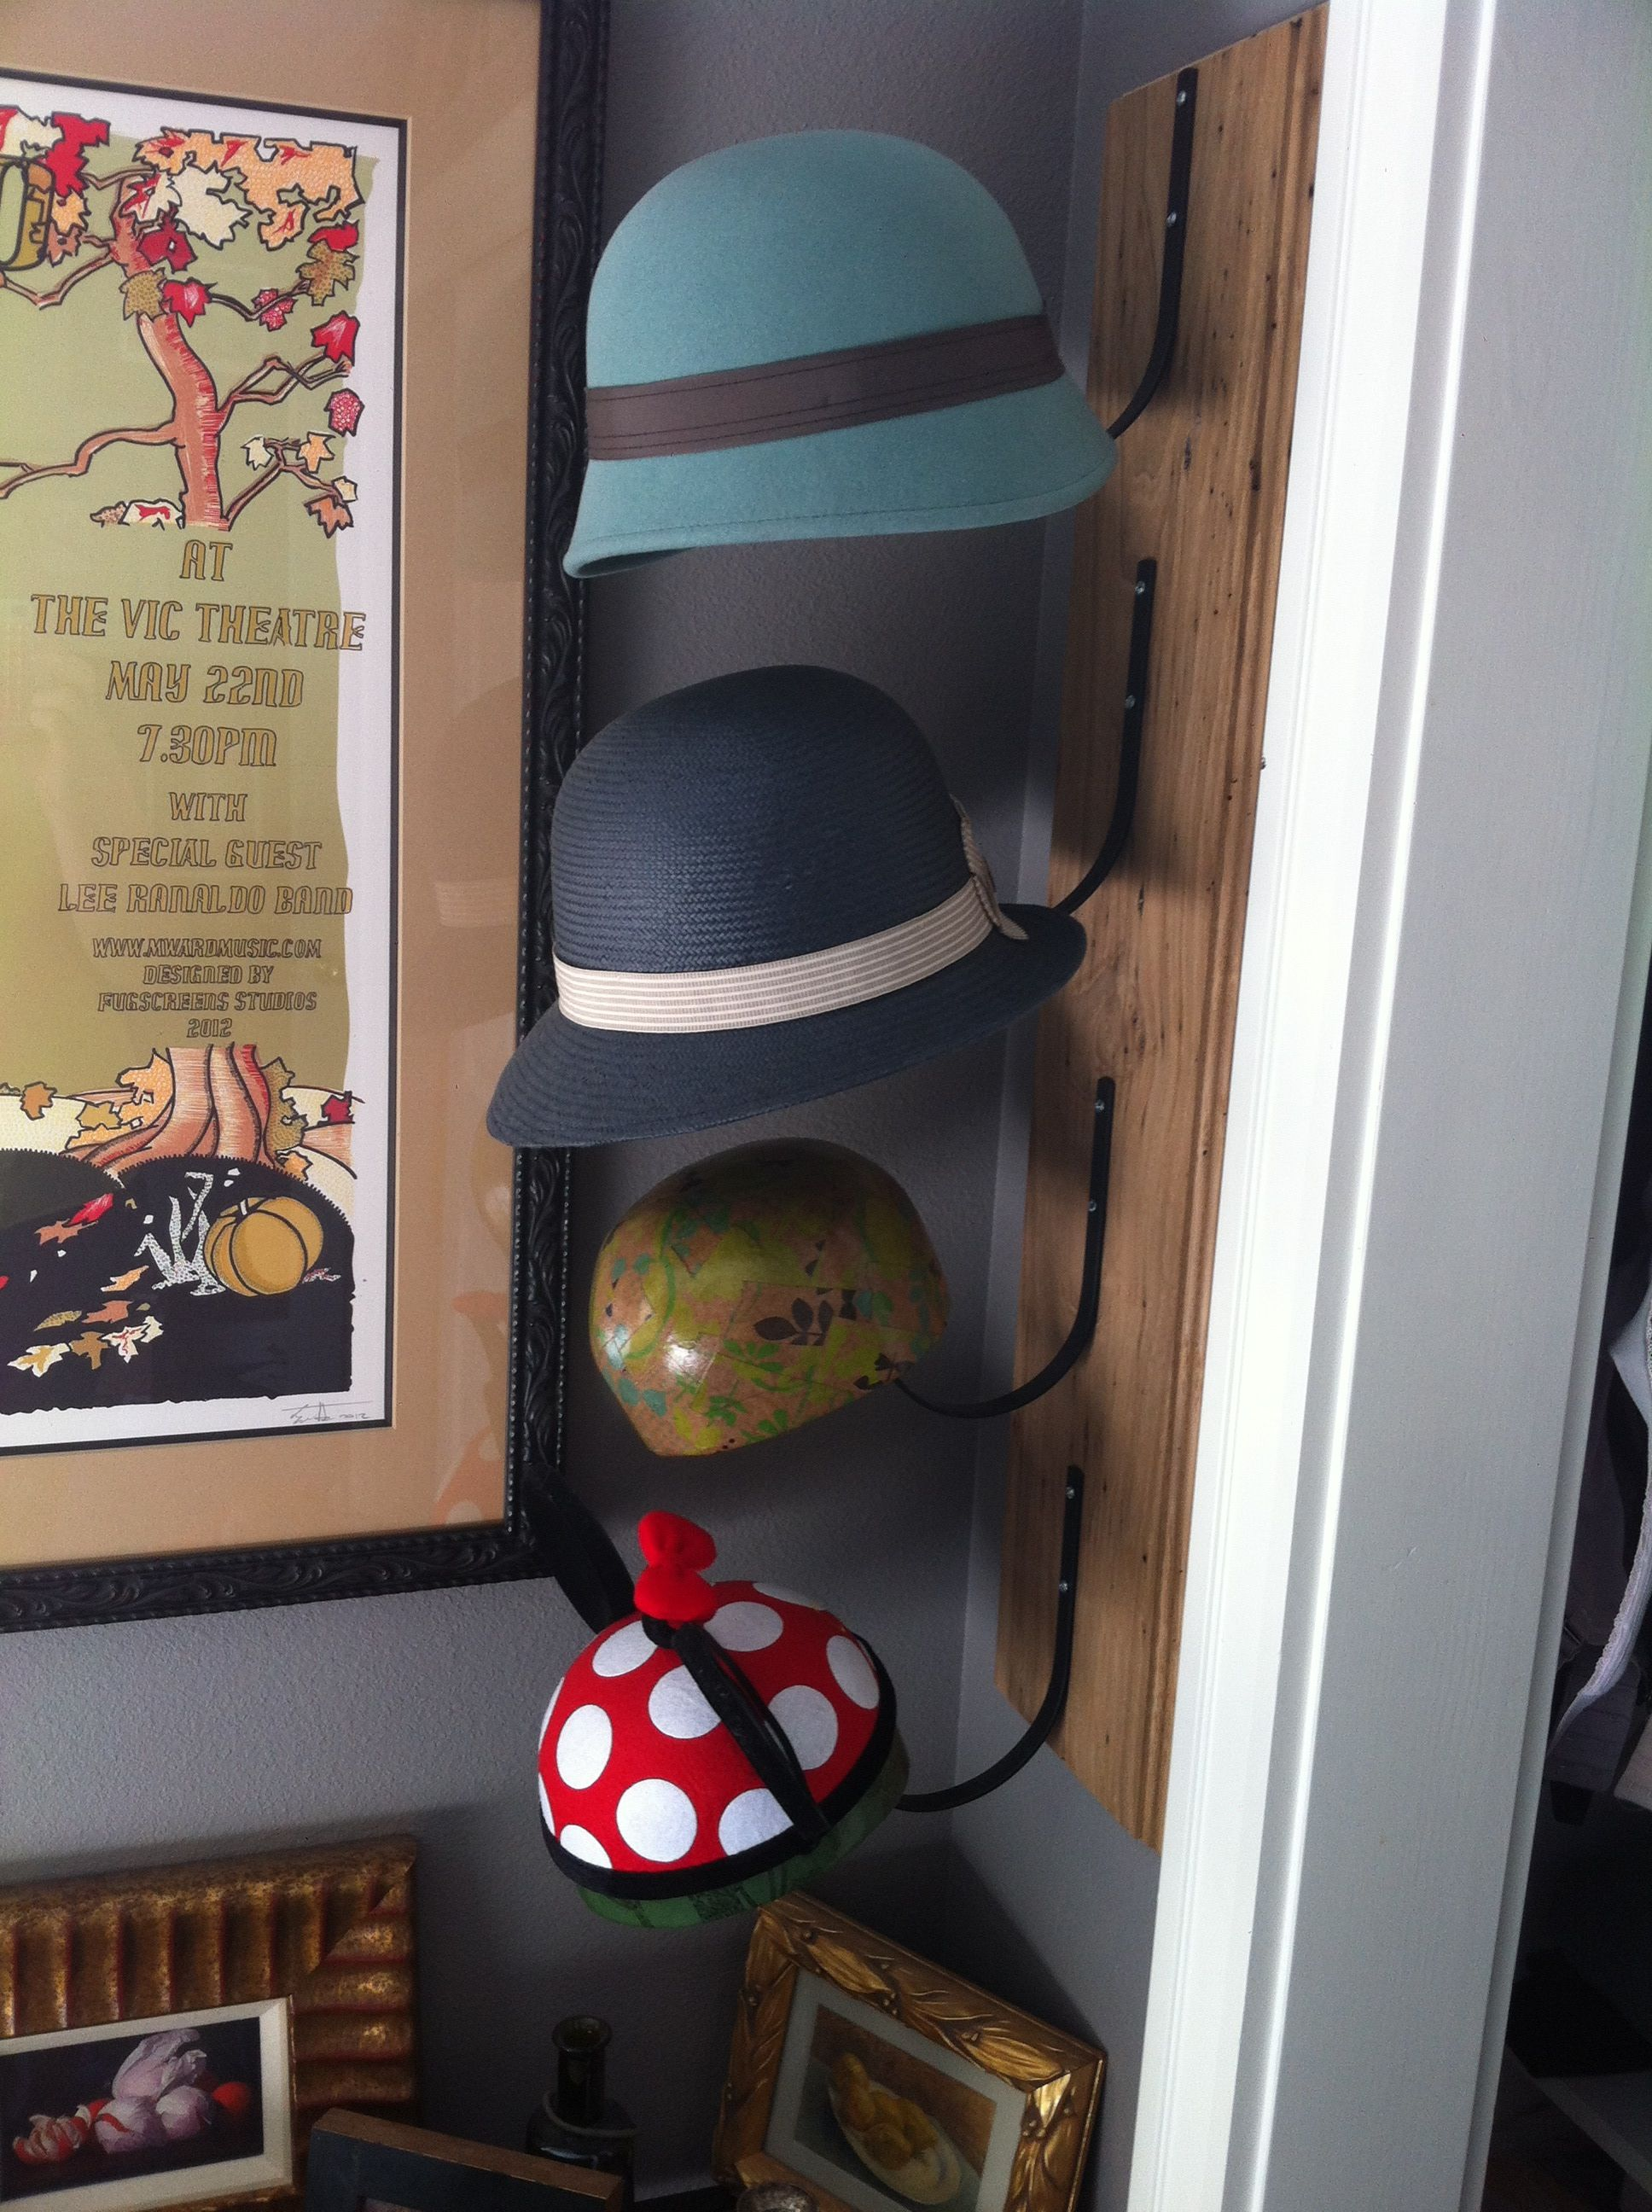 Pin By Cate Tallmadge On Home Dec Diy Hat Stand Hat Stands Crafty